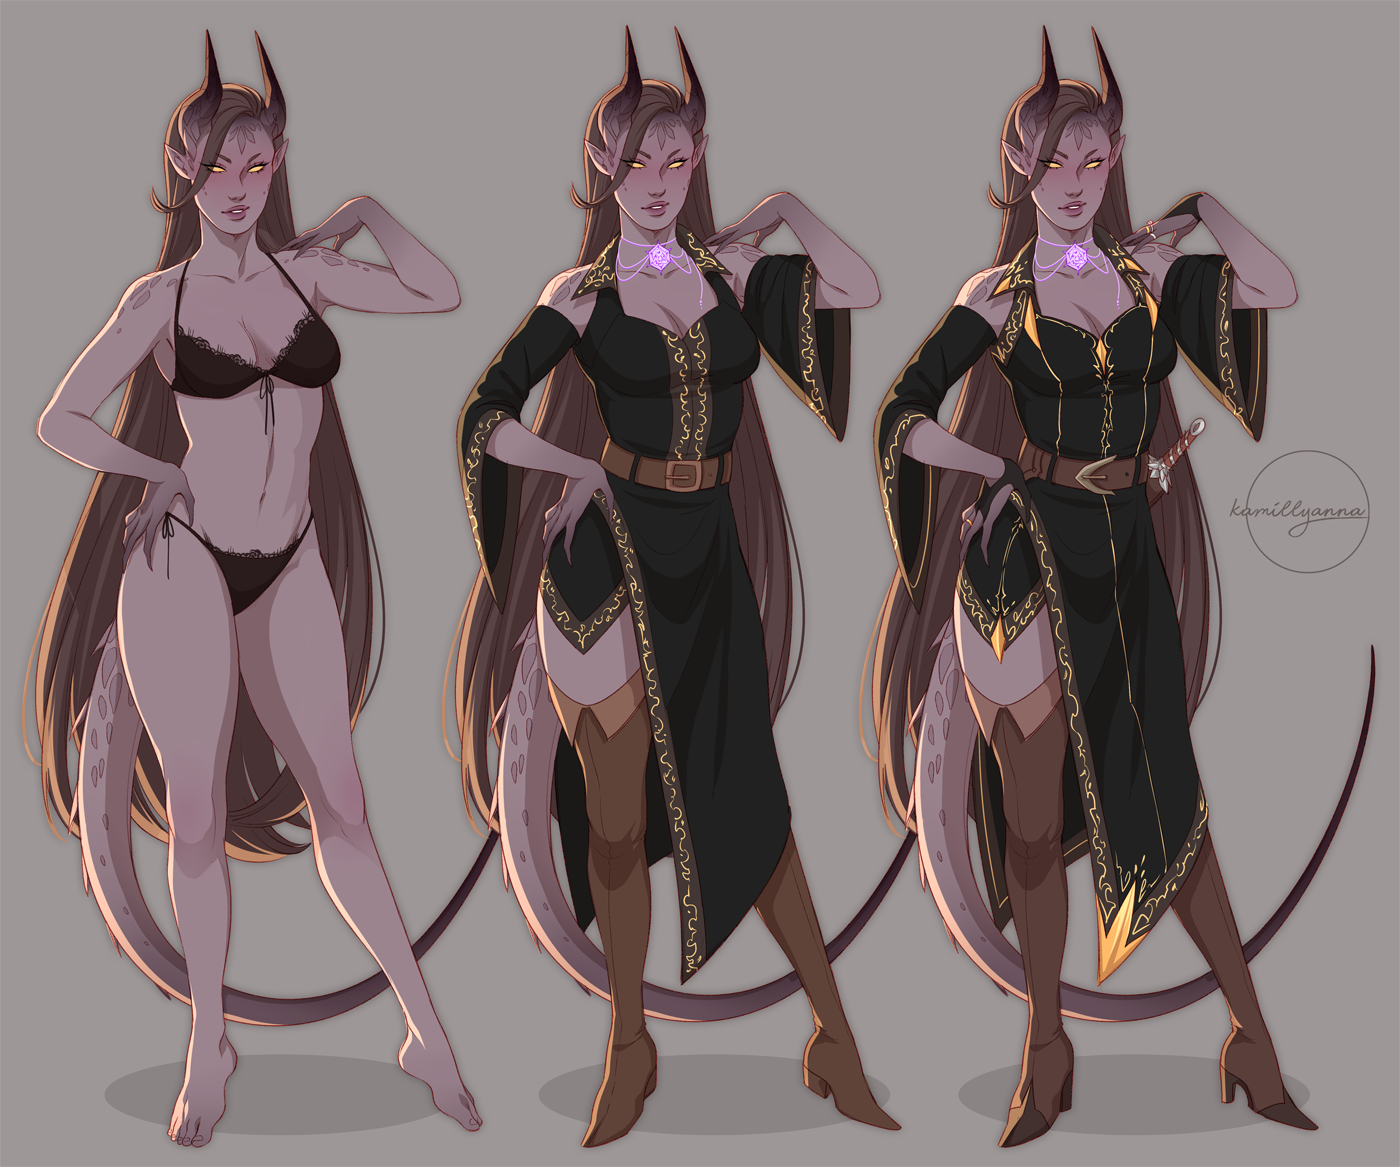 DND  outfit lineup by kamillyanna on DeviantArt